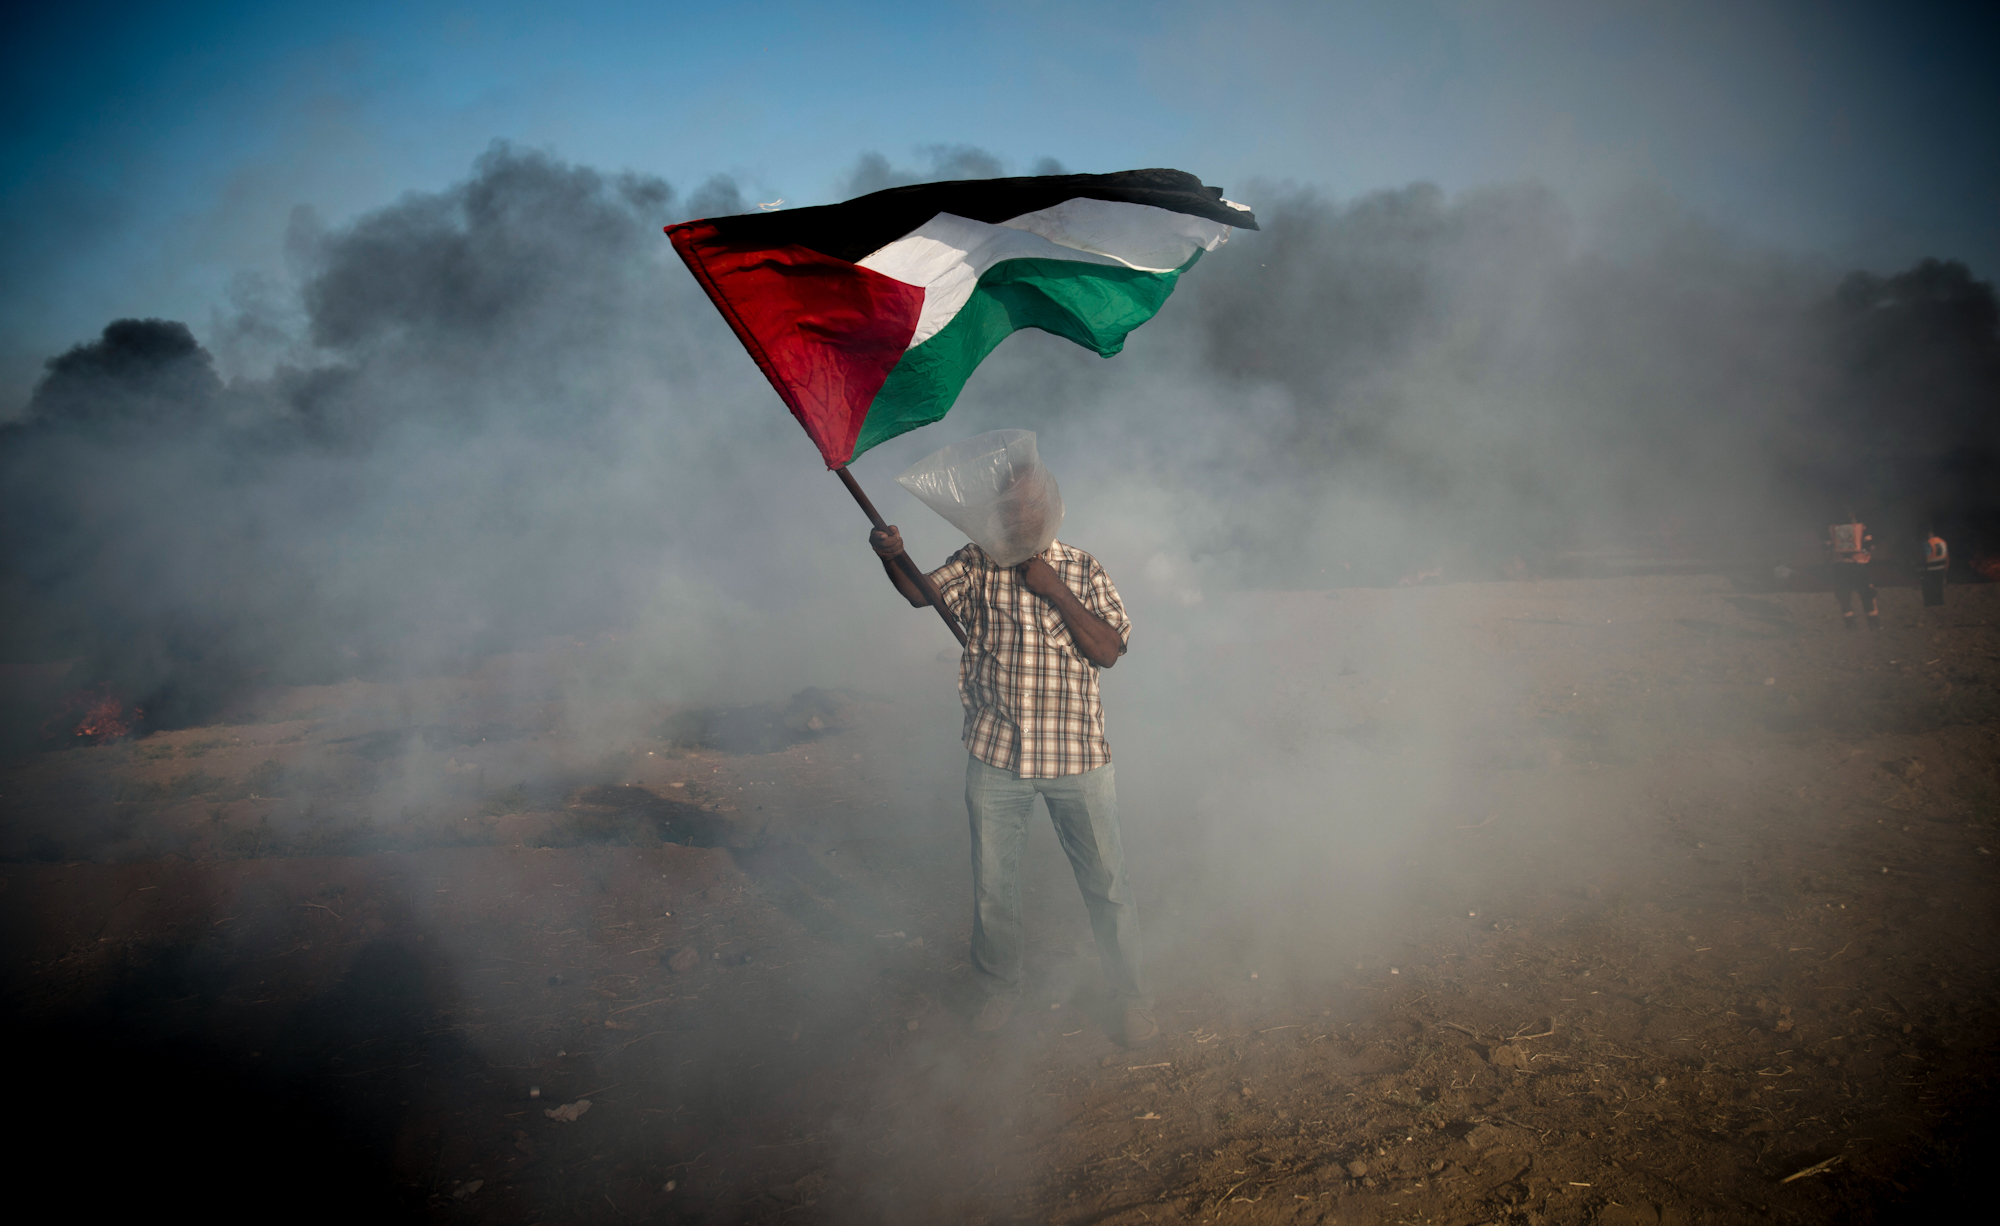 With Little Left to Lose, Gaza's Great Return March Protesters Ramp Up Their Resistance